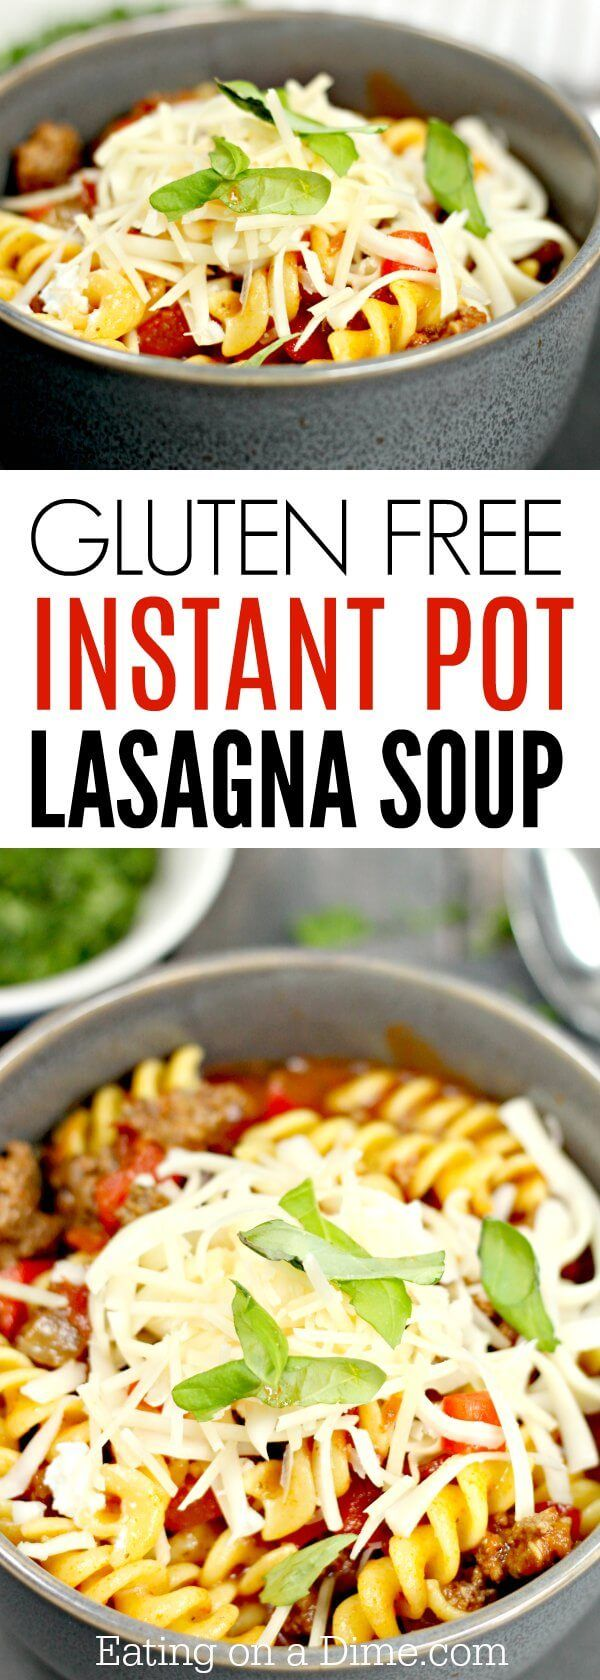 You will love this Gluten free lasagna soup pressure cooker recipe. It is so simple & tasty. Try Gluten Free Lasagna Soup Instant Pot Recipe today.